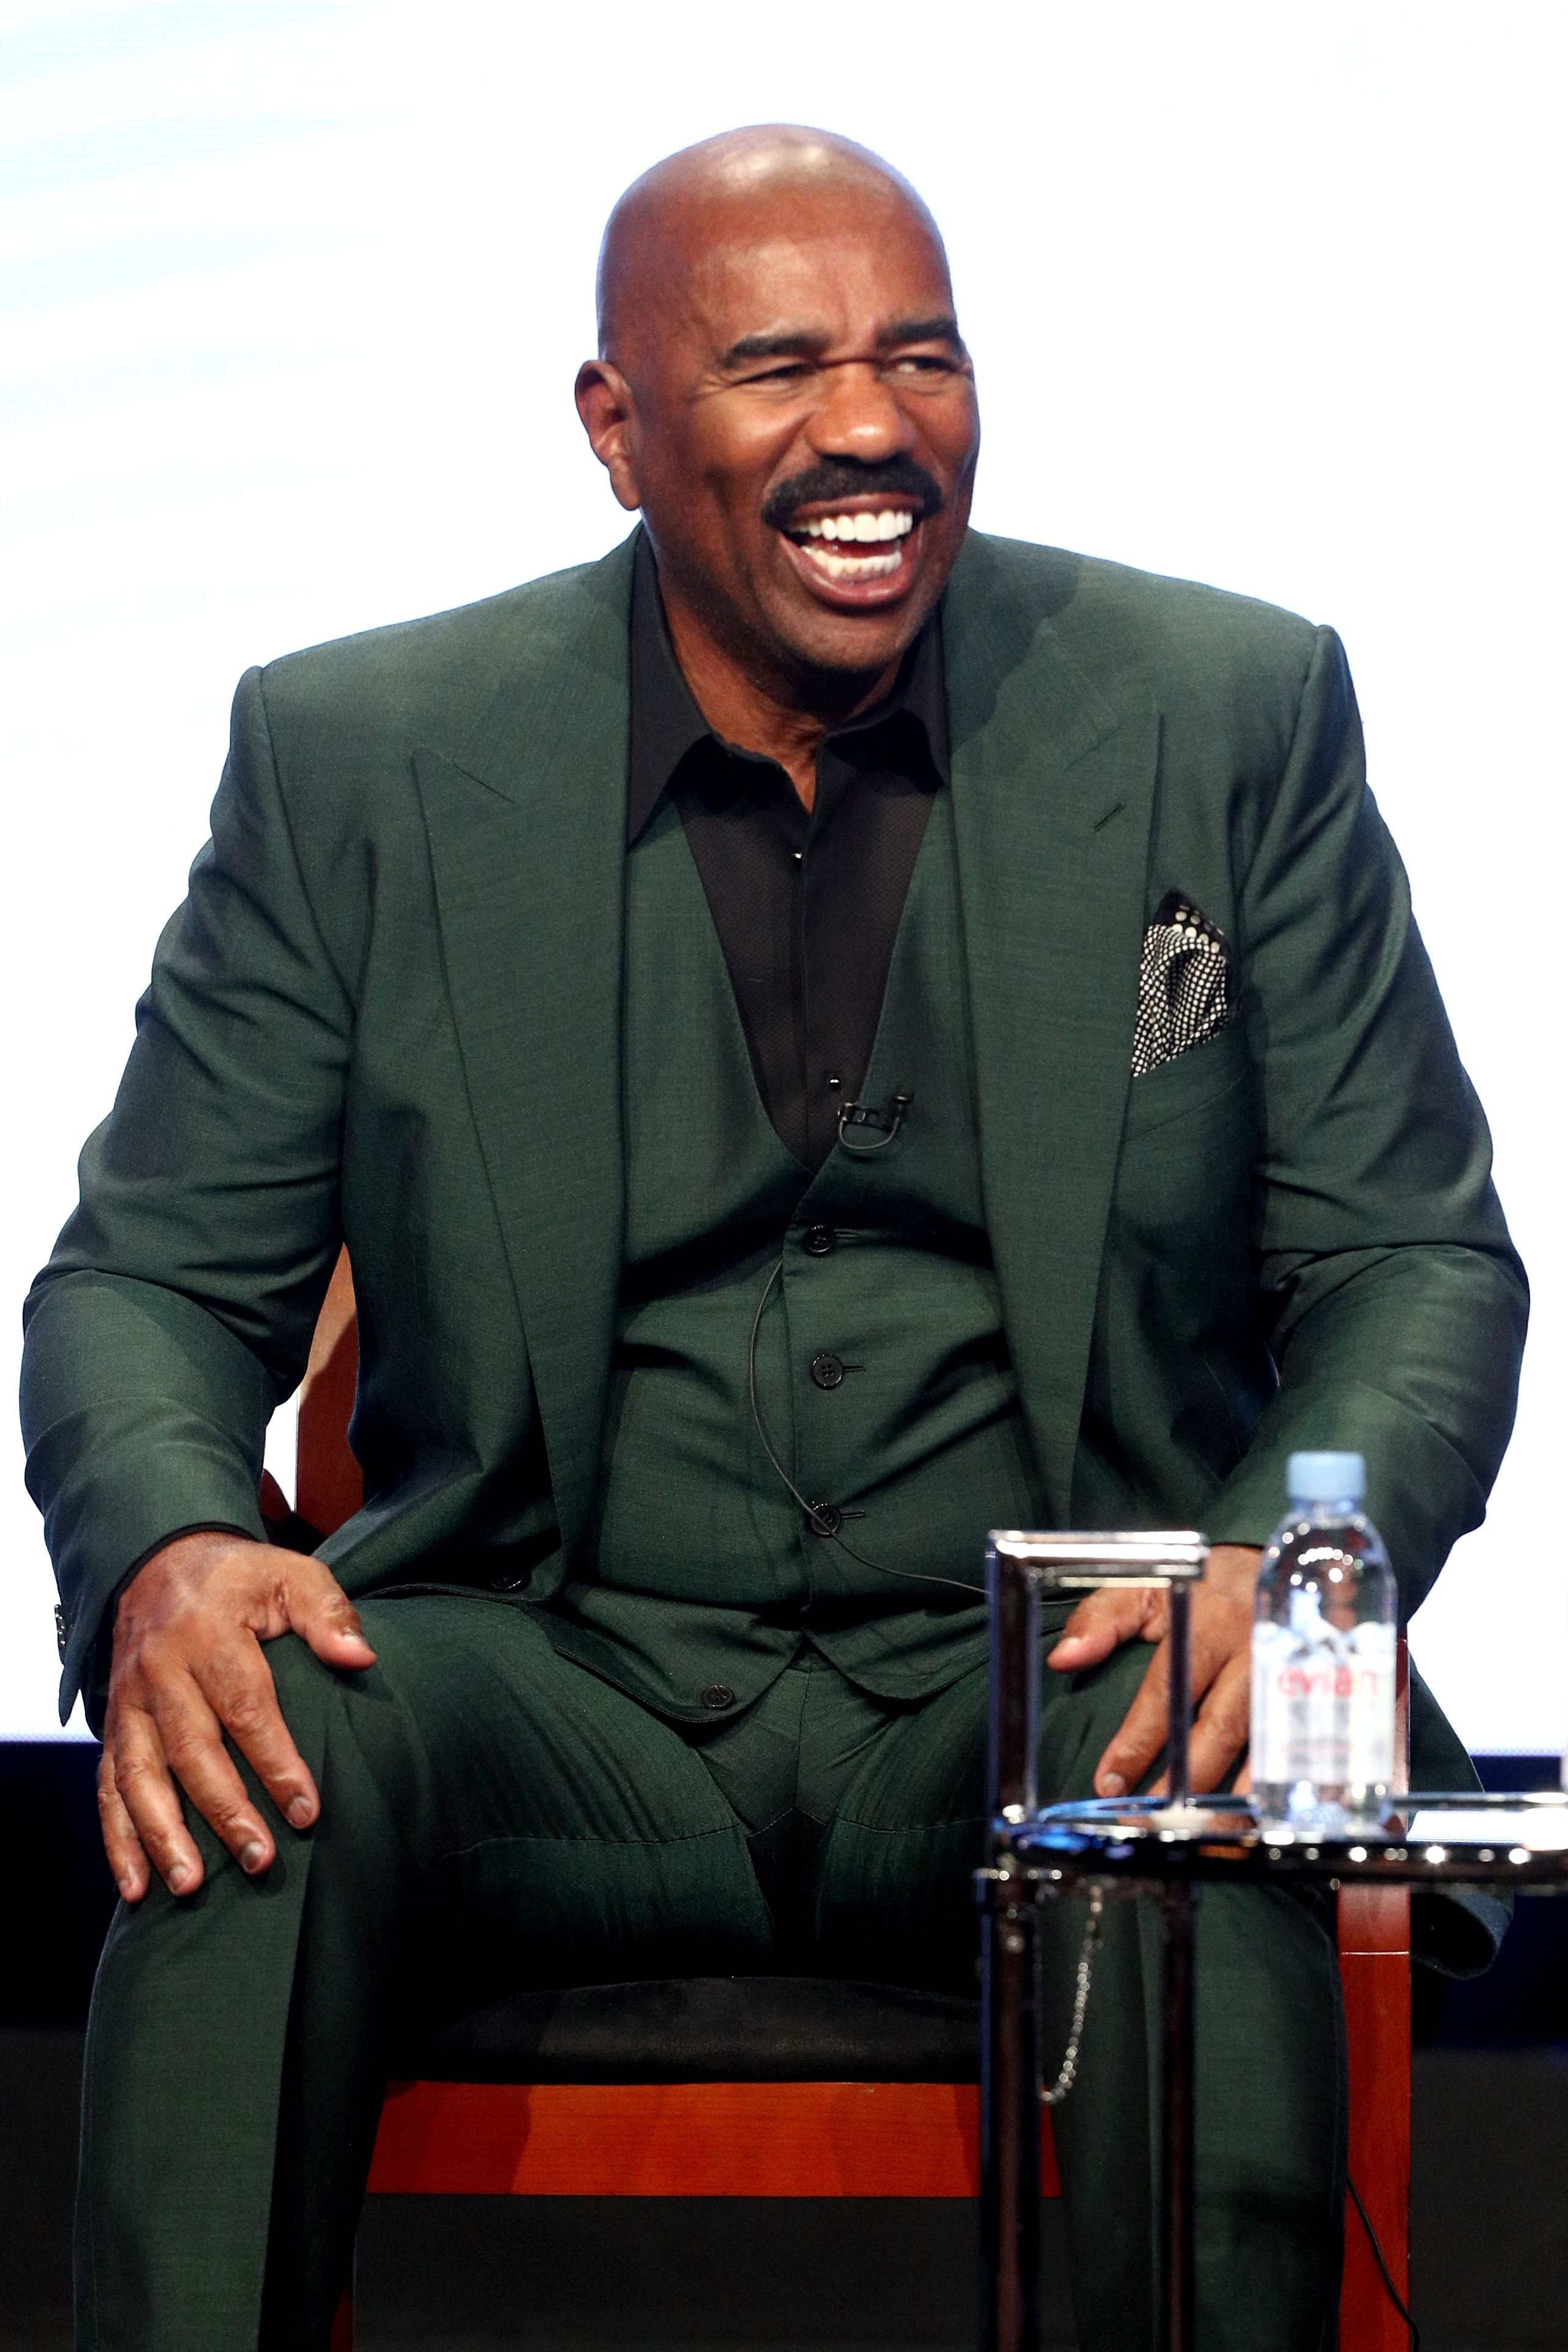 Steve Harvey onstage during the NBC Universal portion of the 2017 Summer Television Critics Association Press Tour on August 3, 2017 in Beverly Hills. | Photo: Getty Images